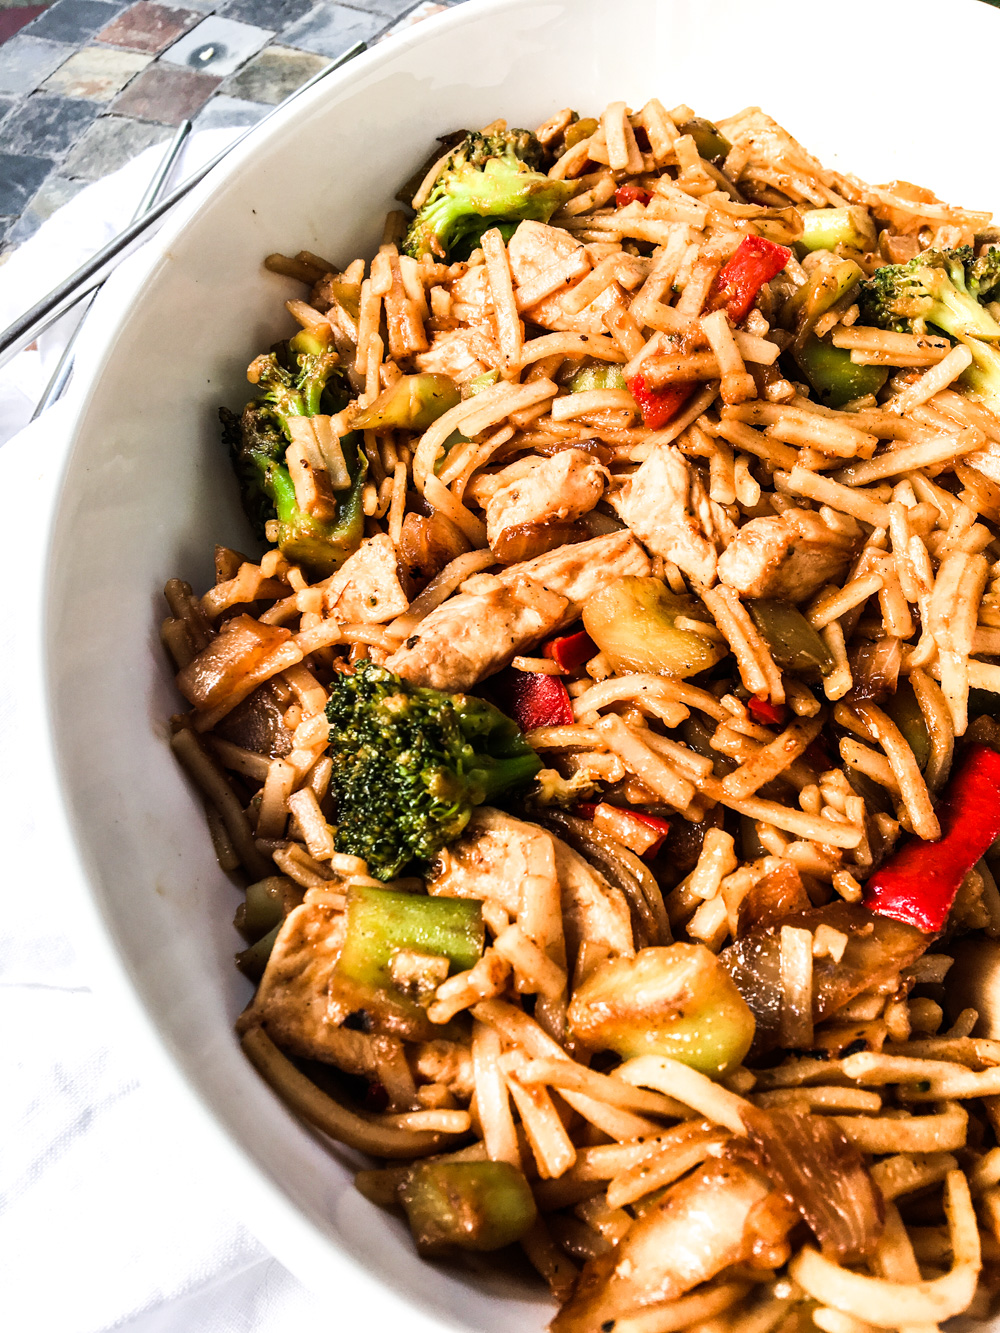 Lifestyle Blogger Chocolate and Lace shares her recipe for Chinese take out at home.